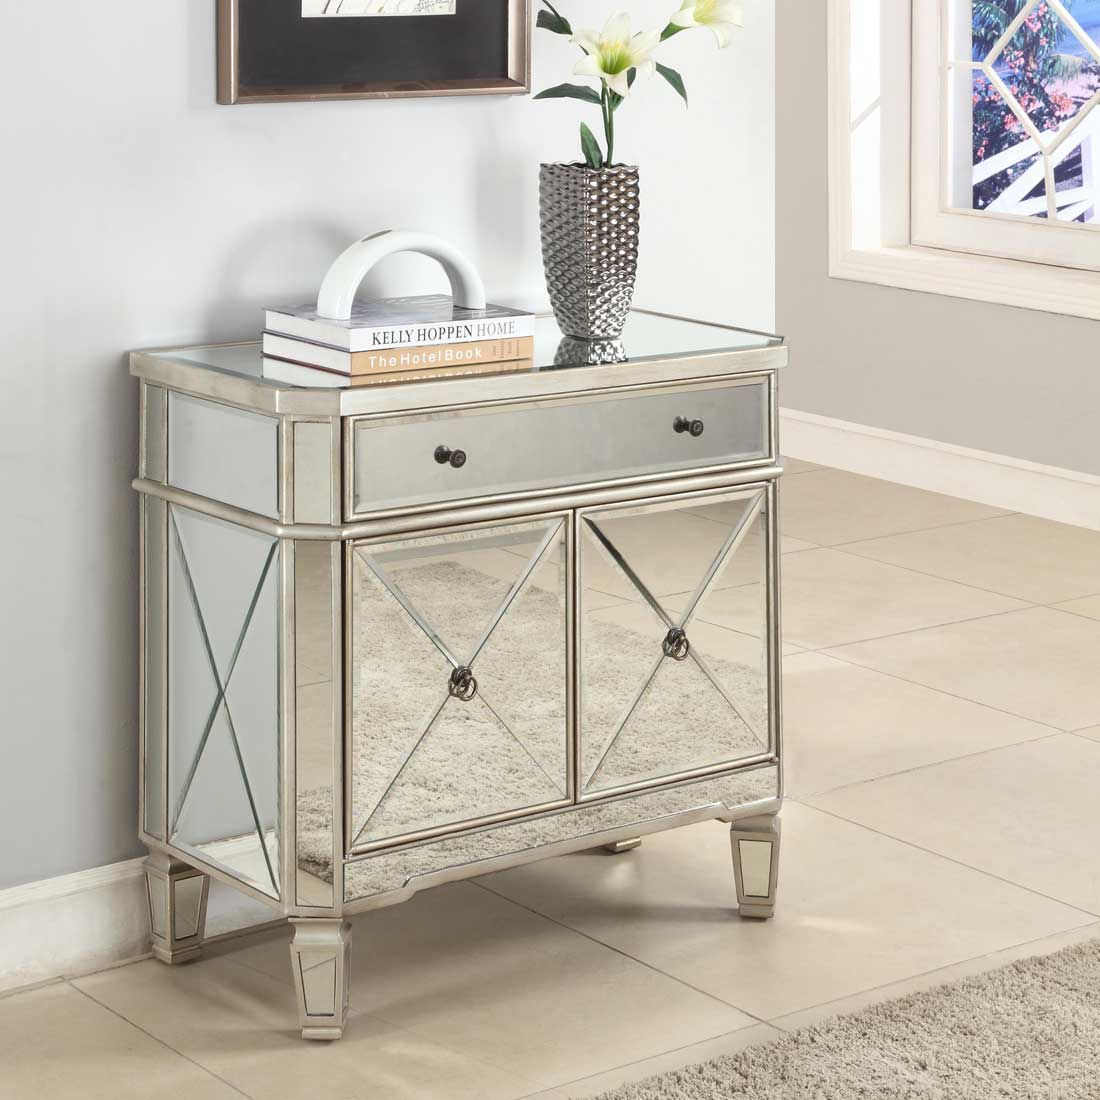 mirrored accent table fossil brewing design awesome bargain furniture outside wall clocks outdoor and chair covers rectangular sauder bookshelf glass end tables coffee victorian